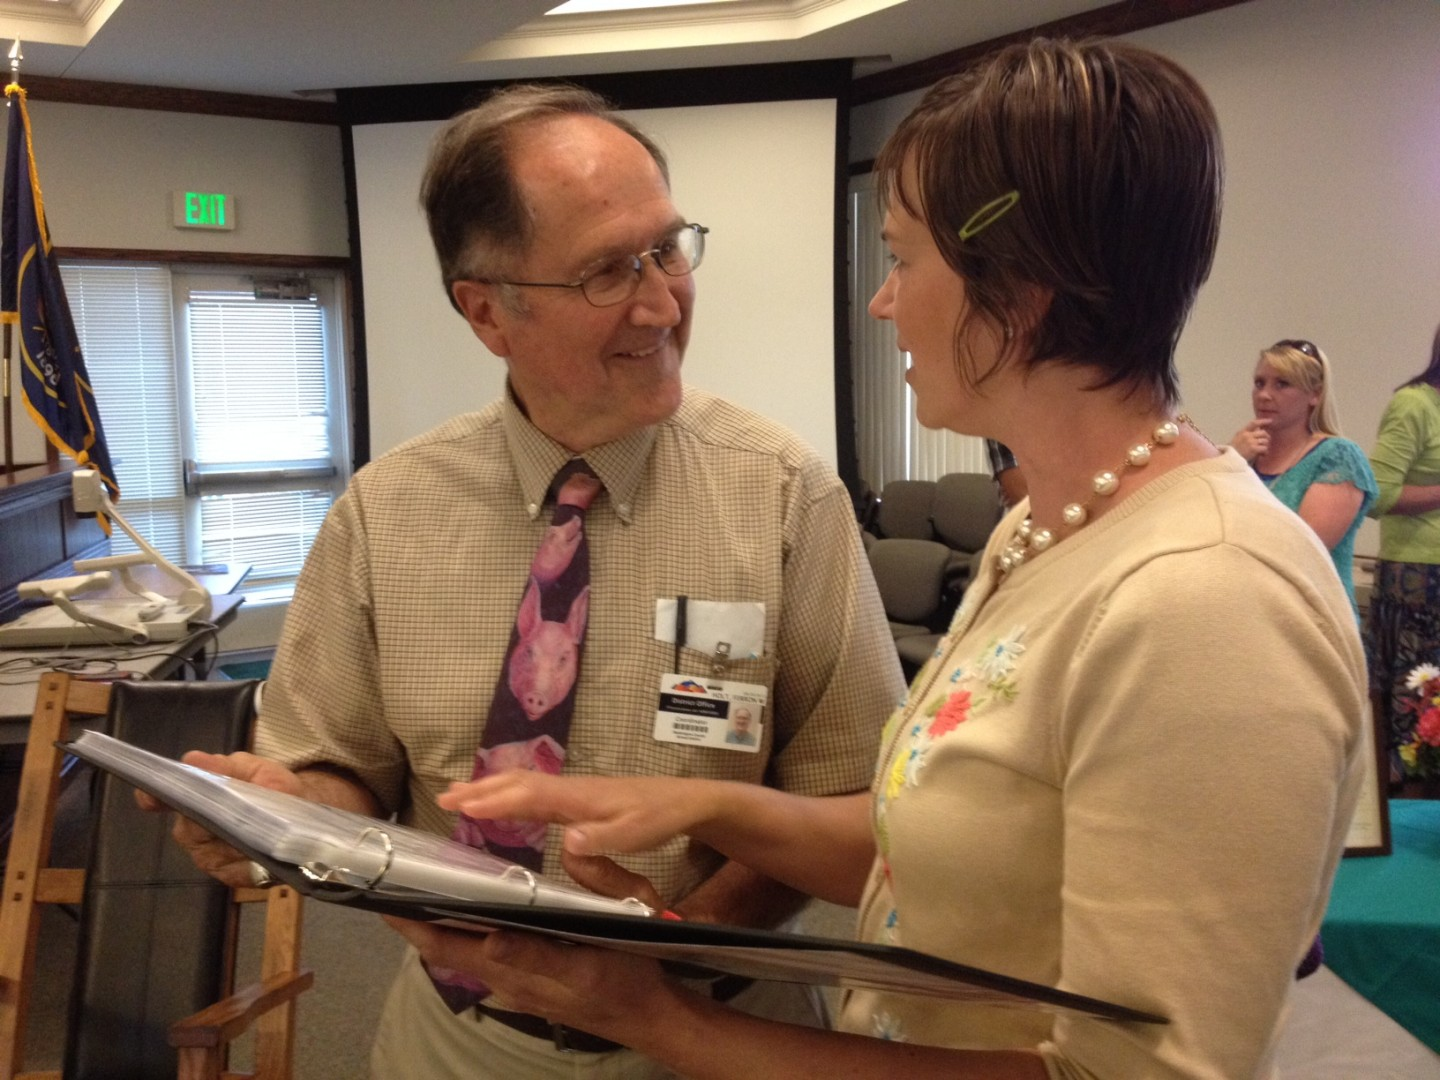 Ferron Holt is presented a book of thank you notes and memories compiled by his daughter Kirsten Holt Beitler at the Washington County School District reception for retiring employees. St. George, Utah, May 7, 2014 | Photo by Hollie Reina, St. George News